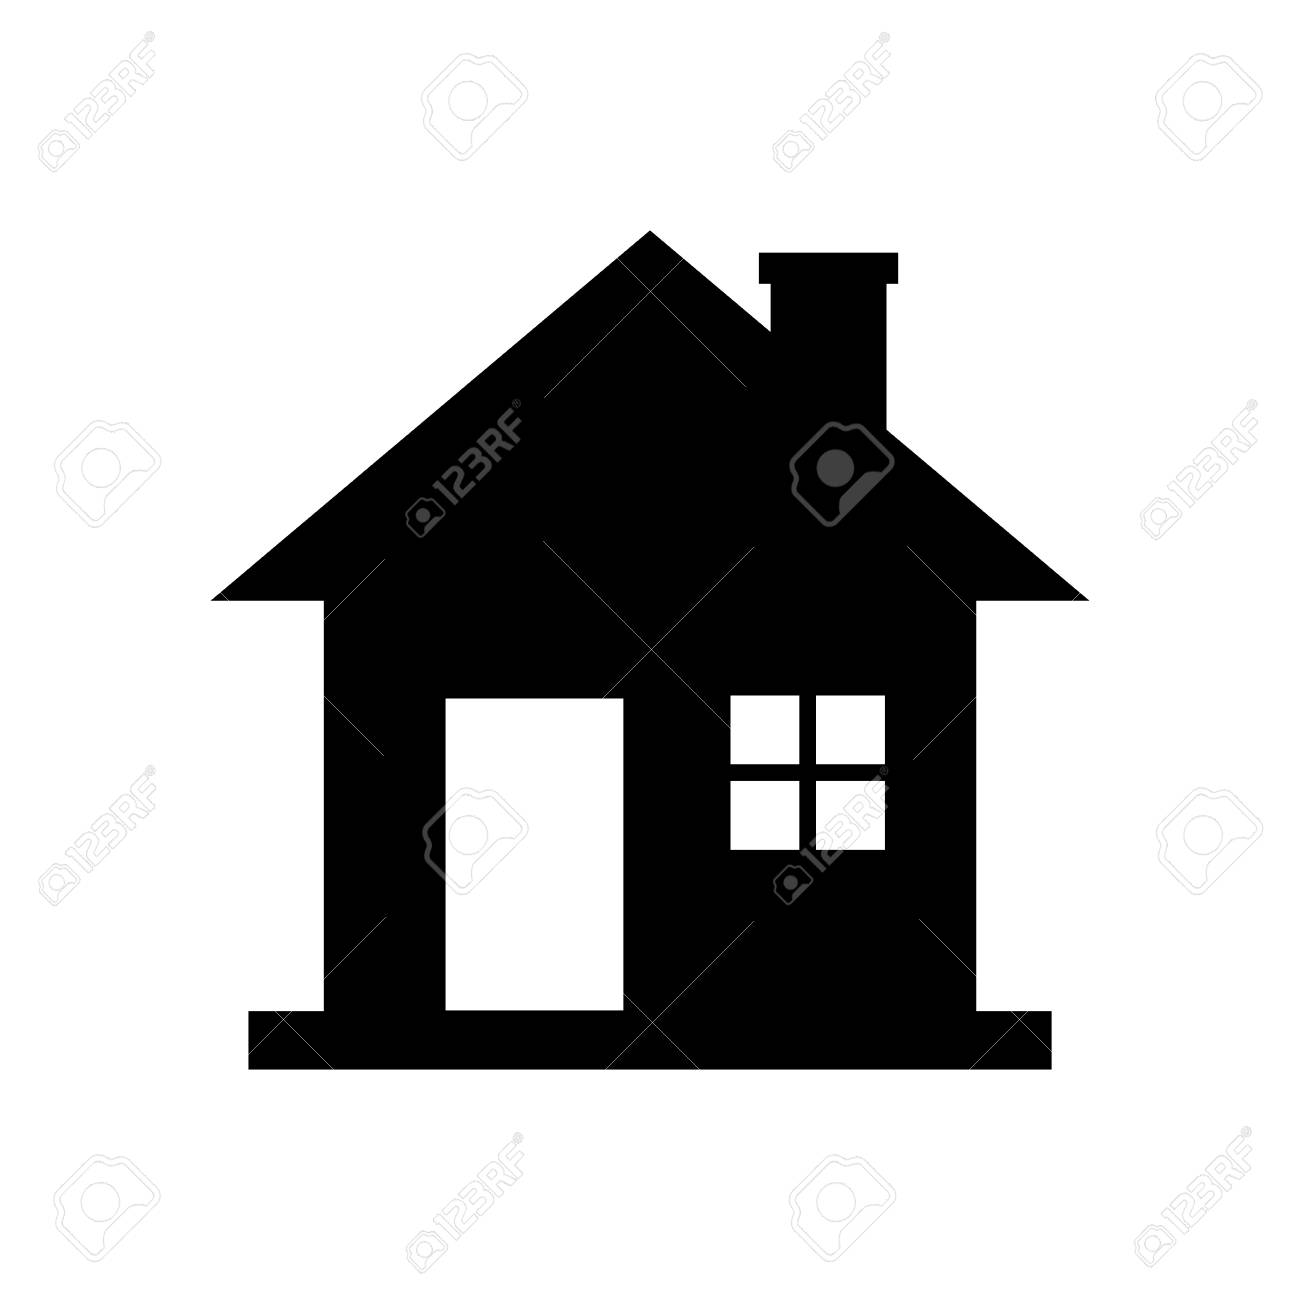 8fc6210a497c Black House Icon On White Background Royalty Free Cliparts, Vectors ...